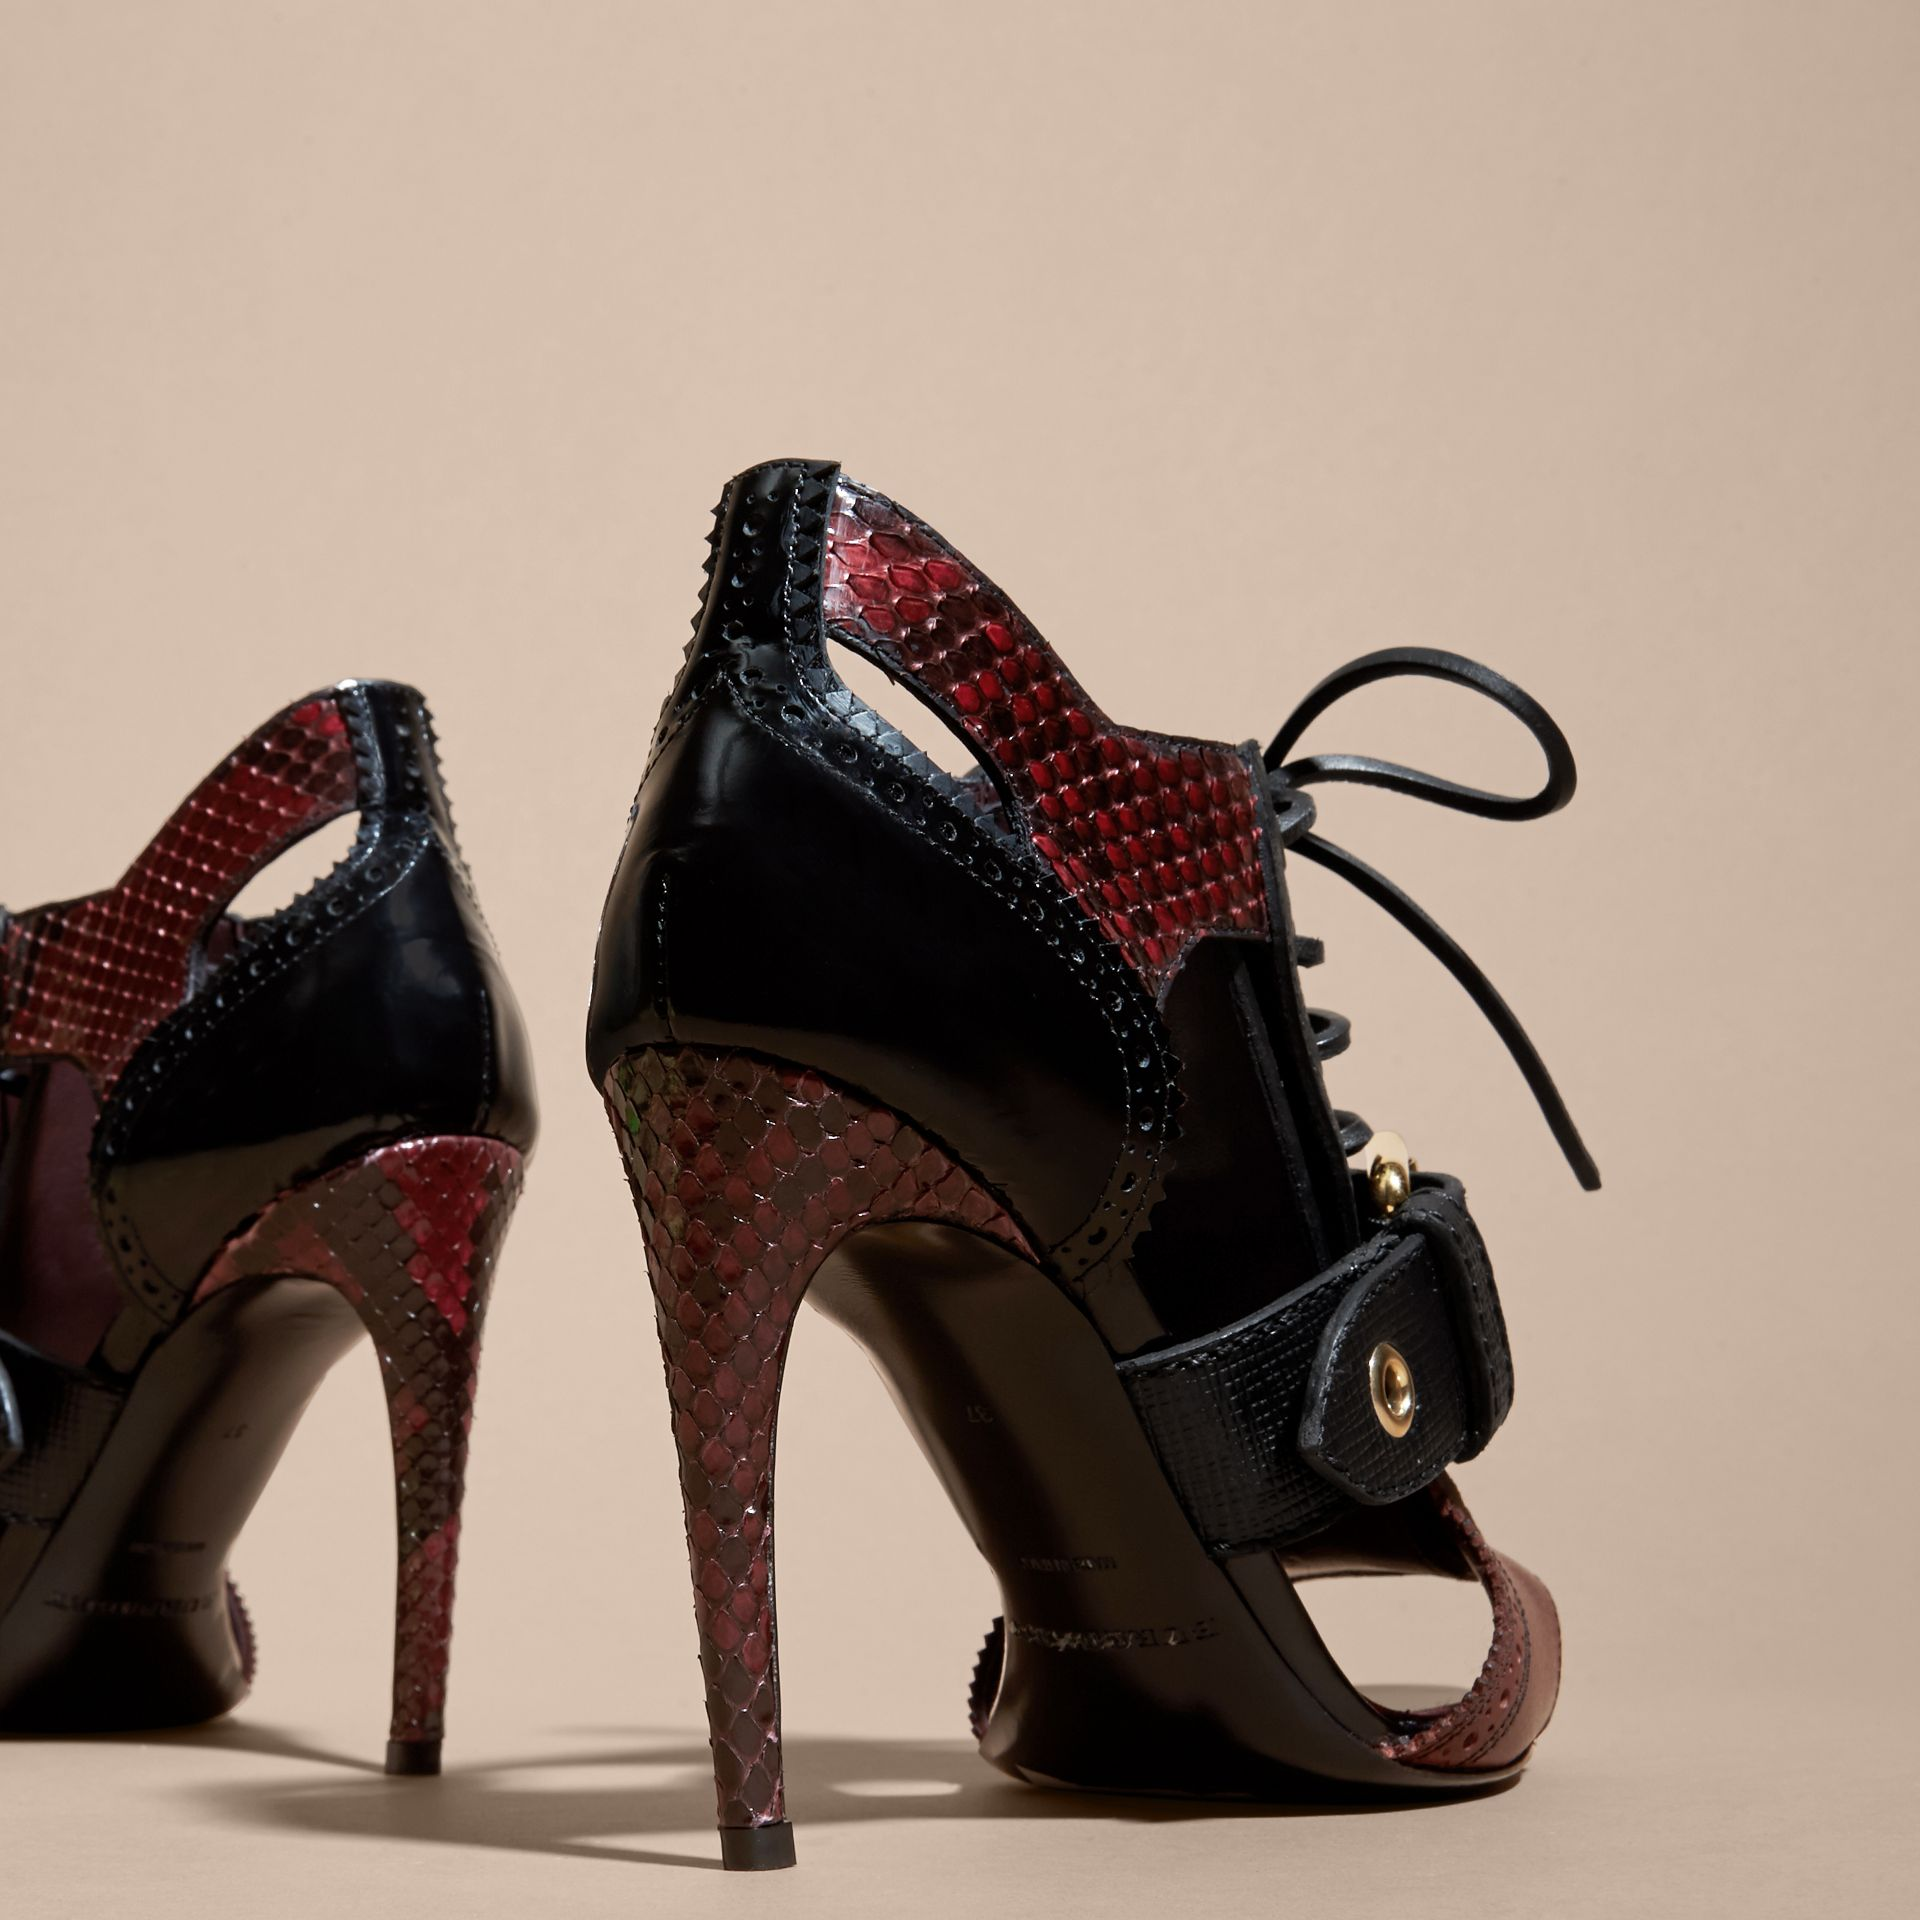 Bordeaux Buckle Detail Leather and Snakeskin Cut-out Ankle Boots Bordeaux - gallery image 4